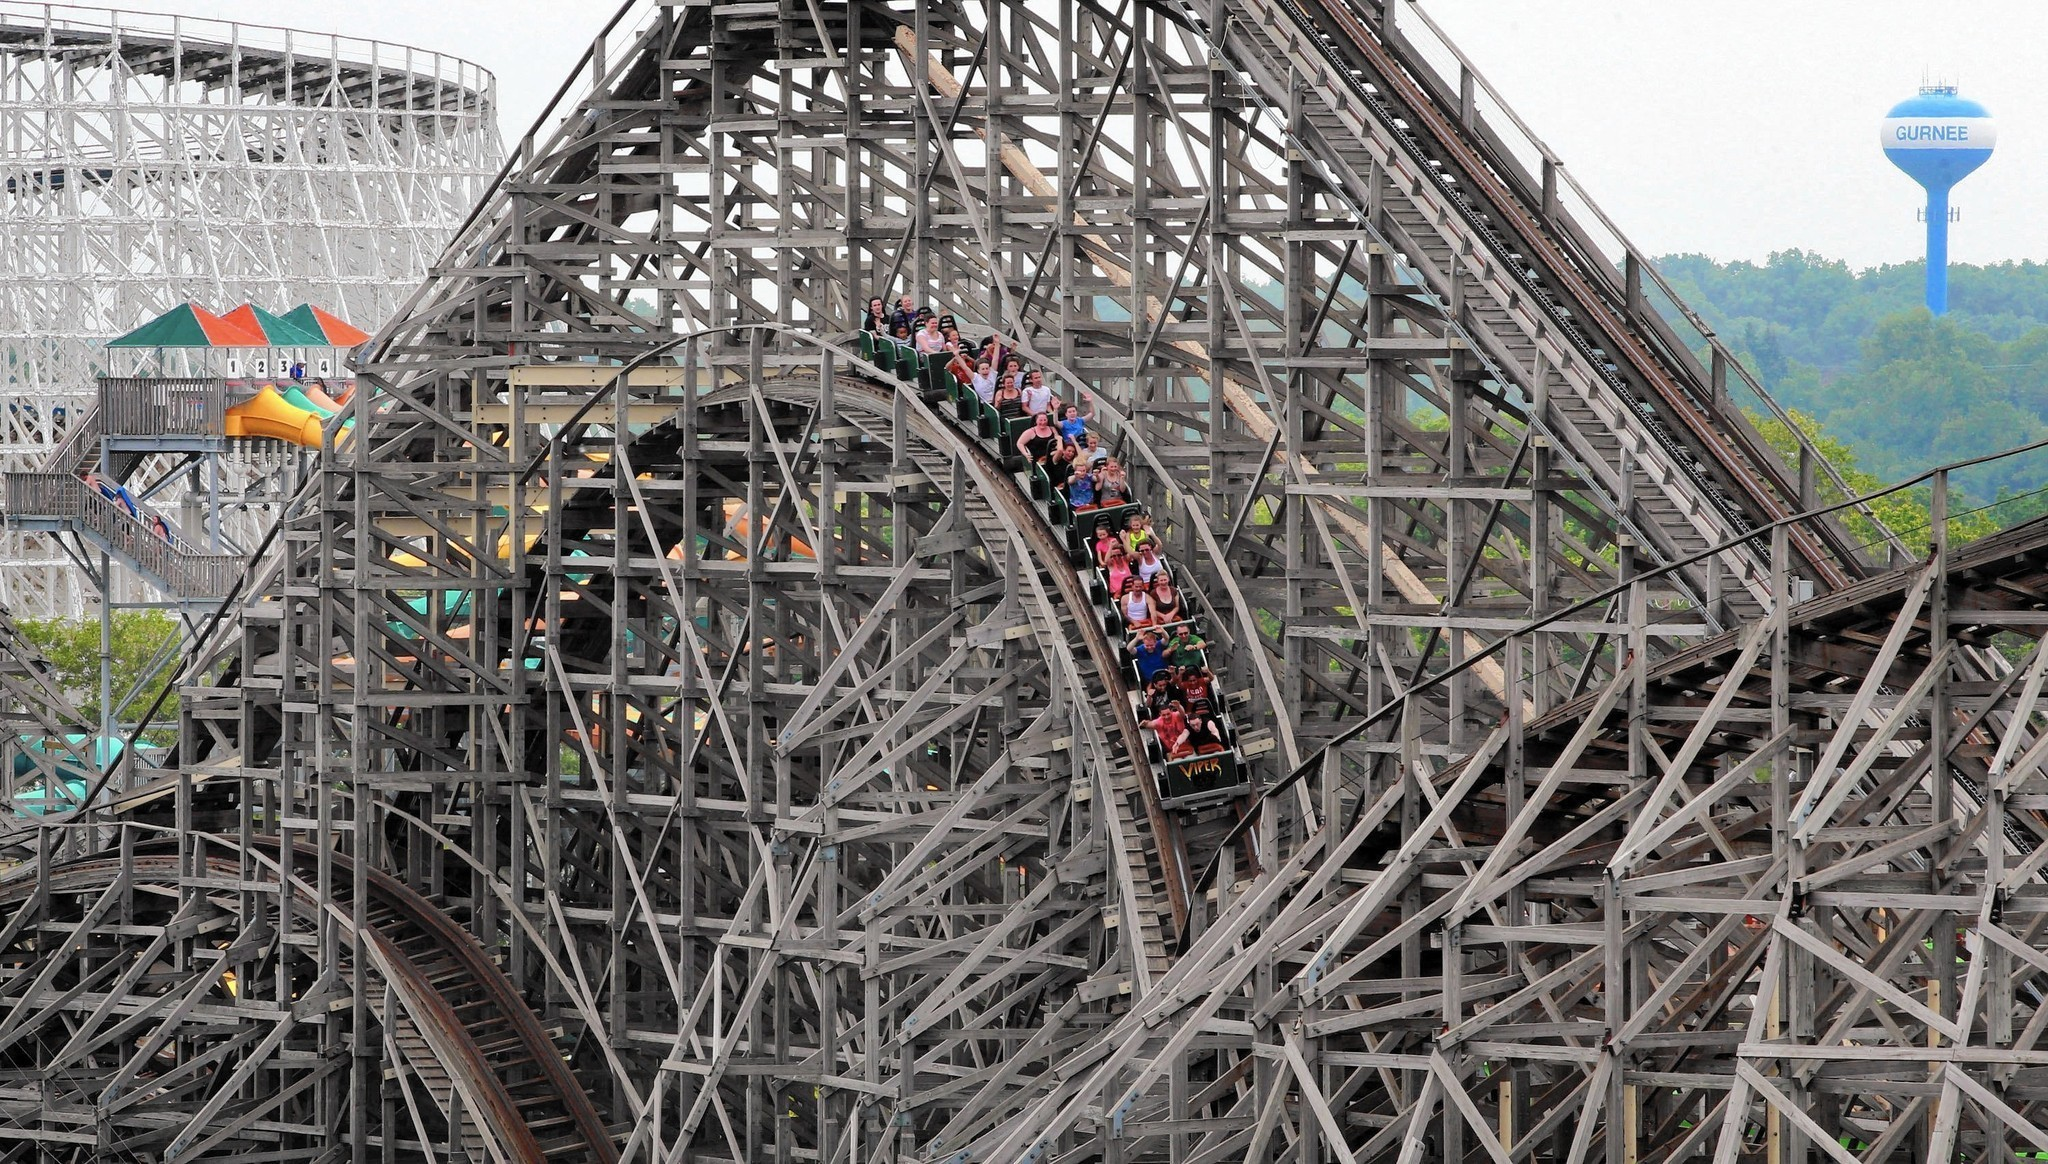 guinness to recognize great america for its record length of